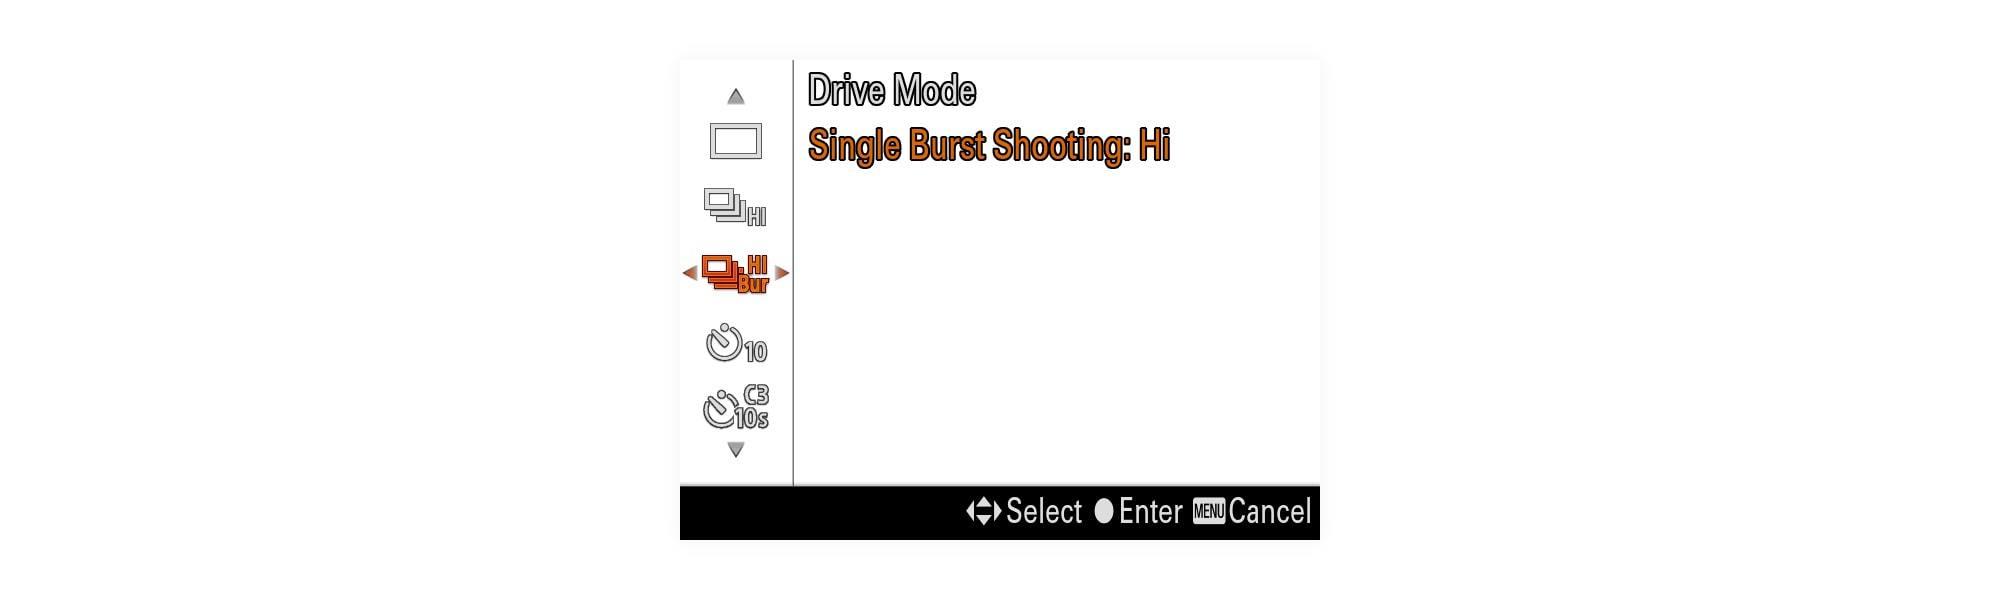 Single Burst Shooting: High burst gives me the ability to take perfect shots